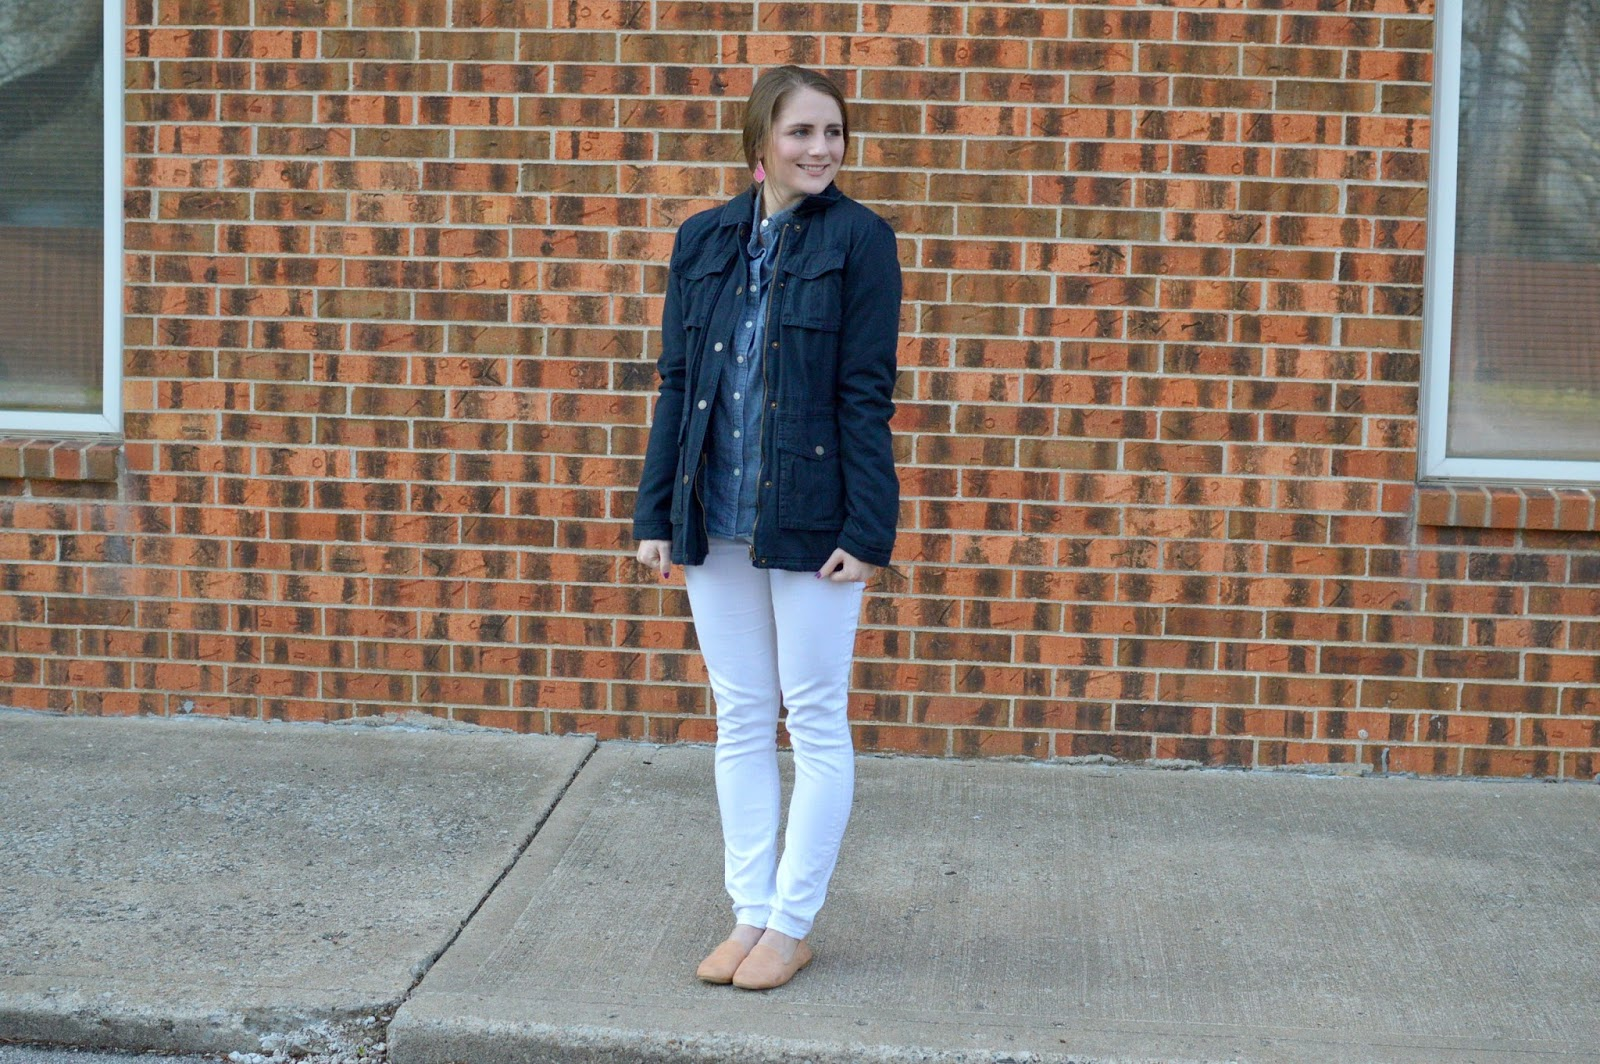 easy spring outfit ideas: navy military jacket outfit idea